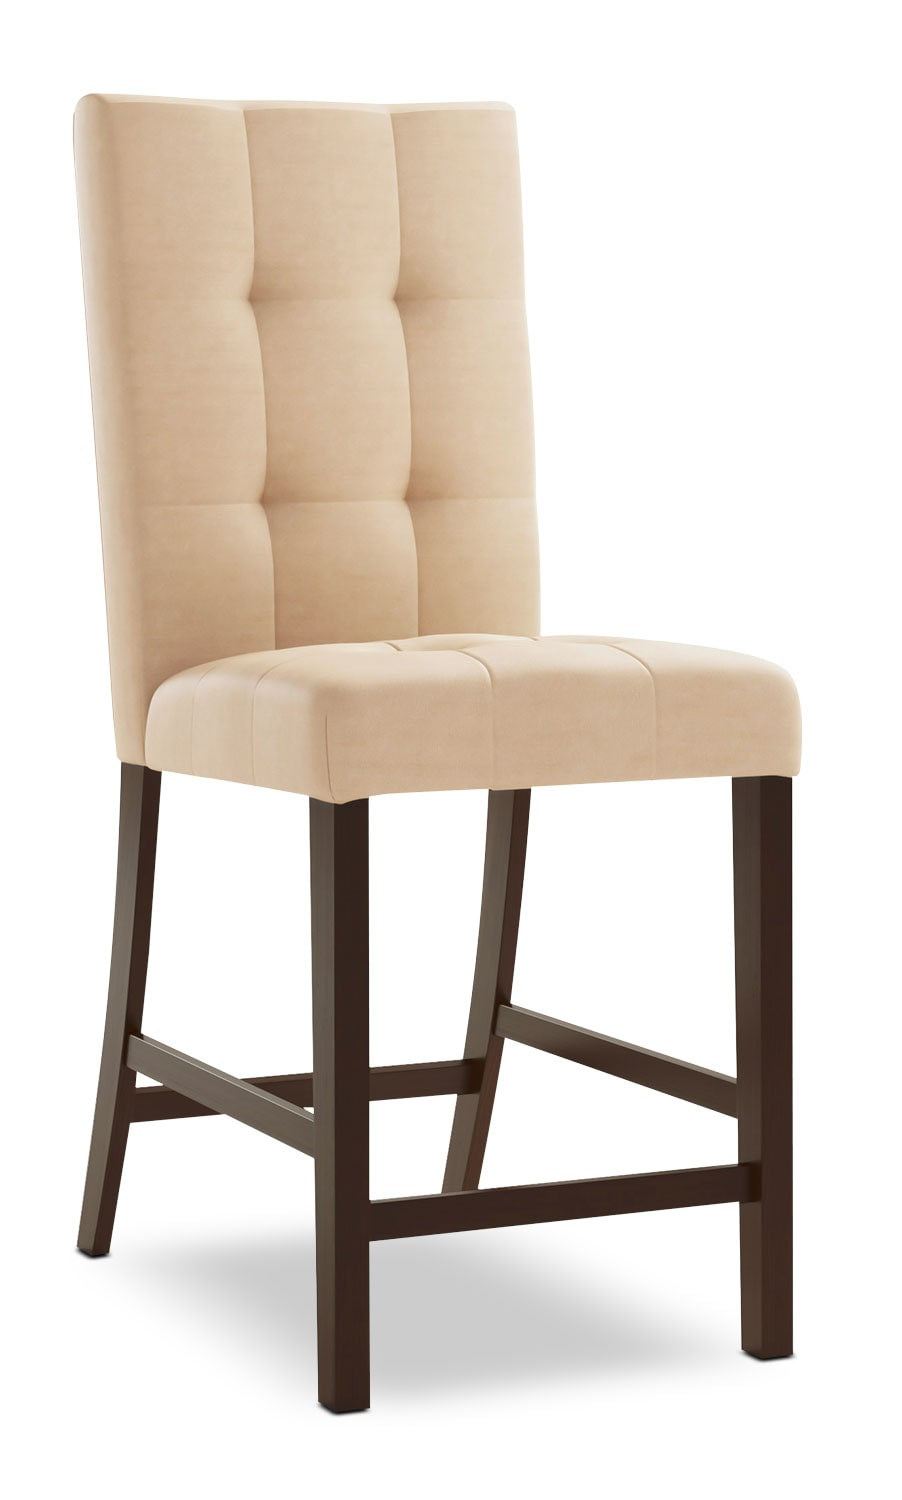 Bistro Square-Tufted Counter-Height Dining Chair – Desert Sand